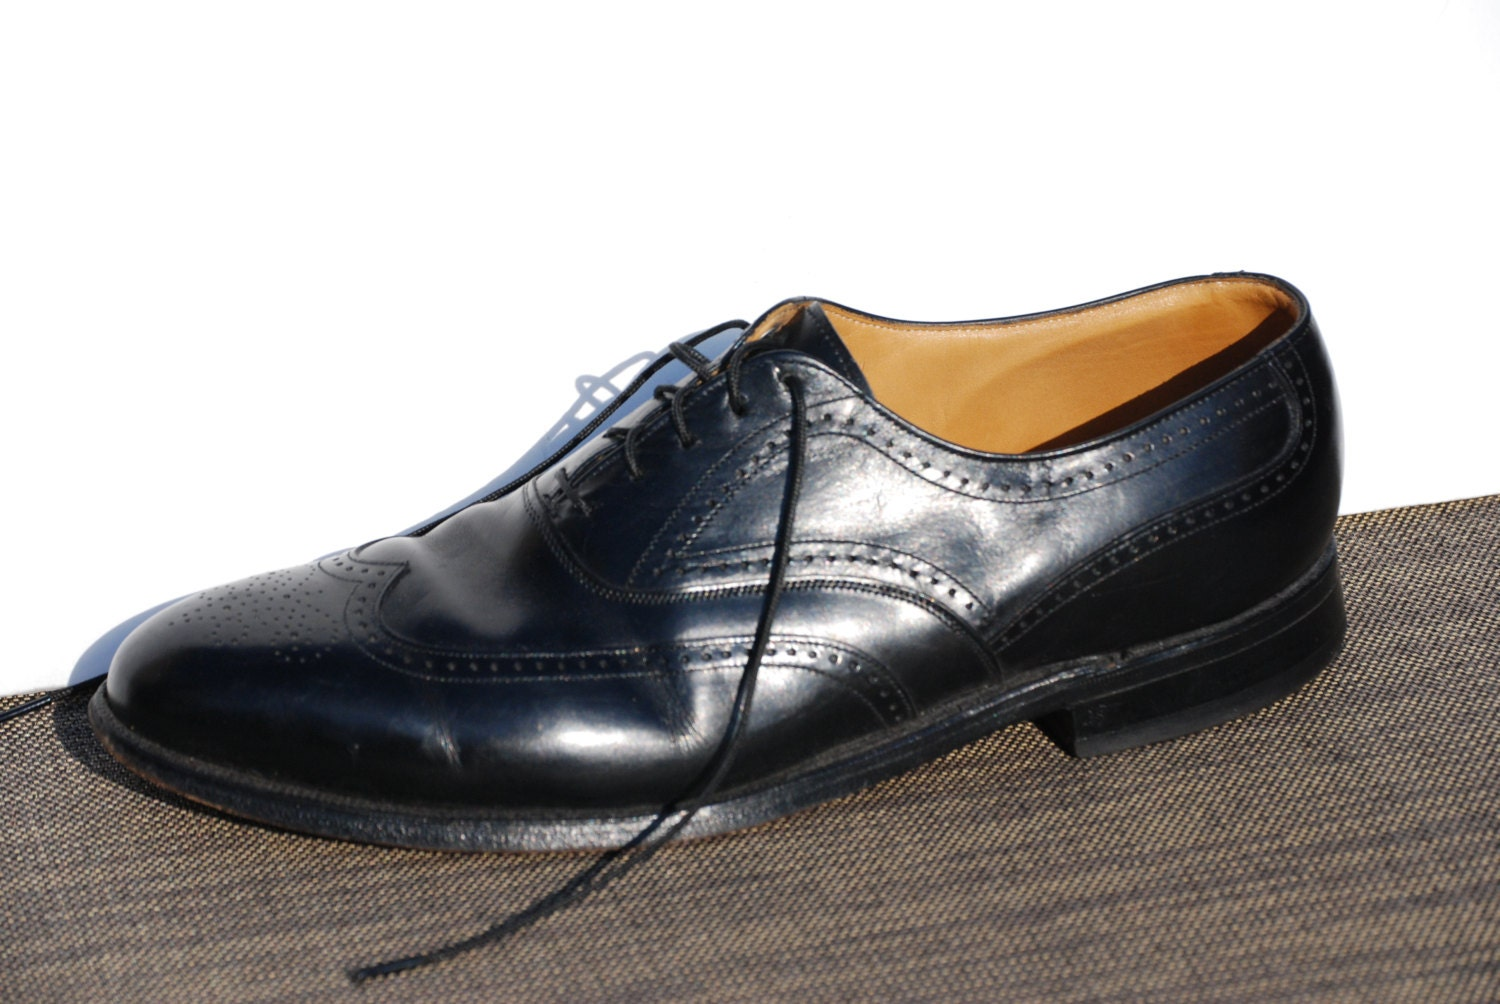 jhnston murphy mens shoes 8d wingtips dress shoes johnston